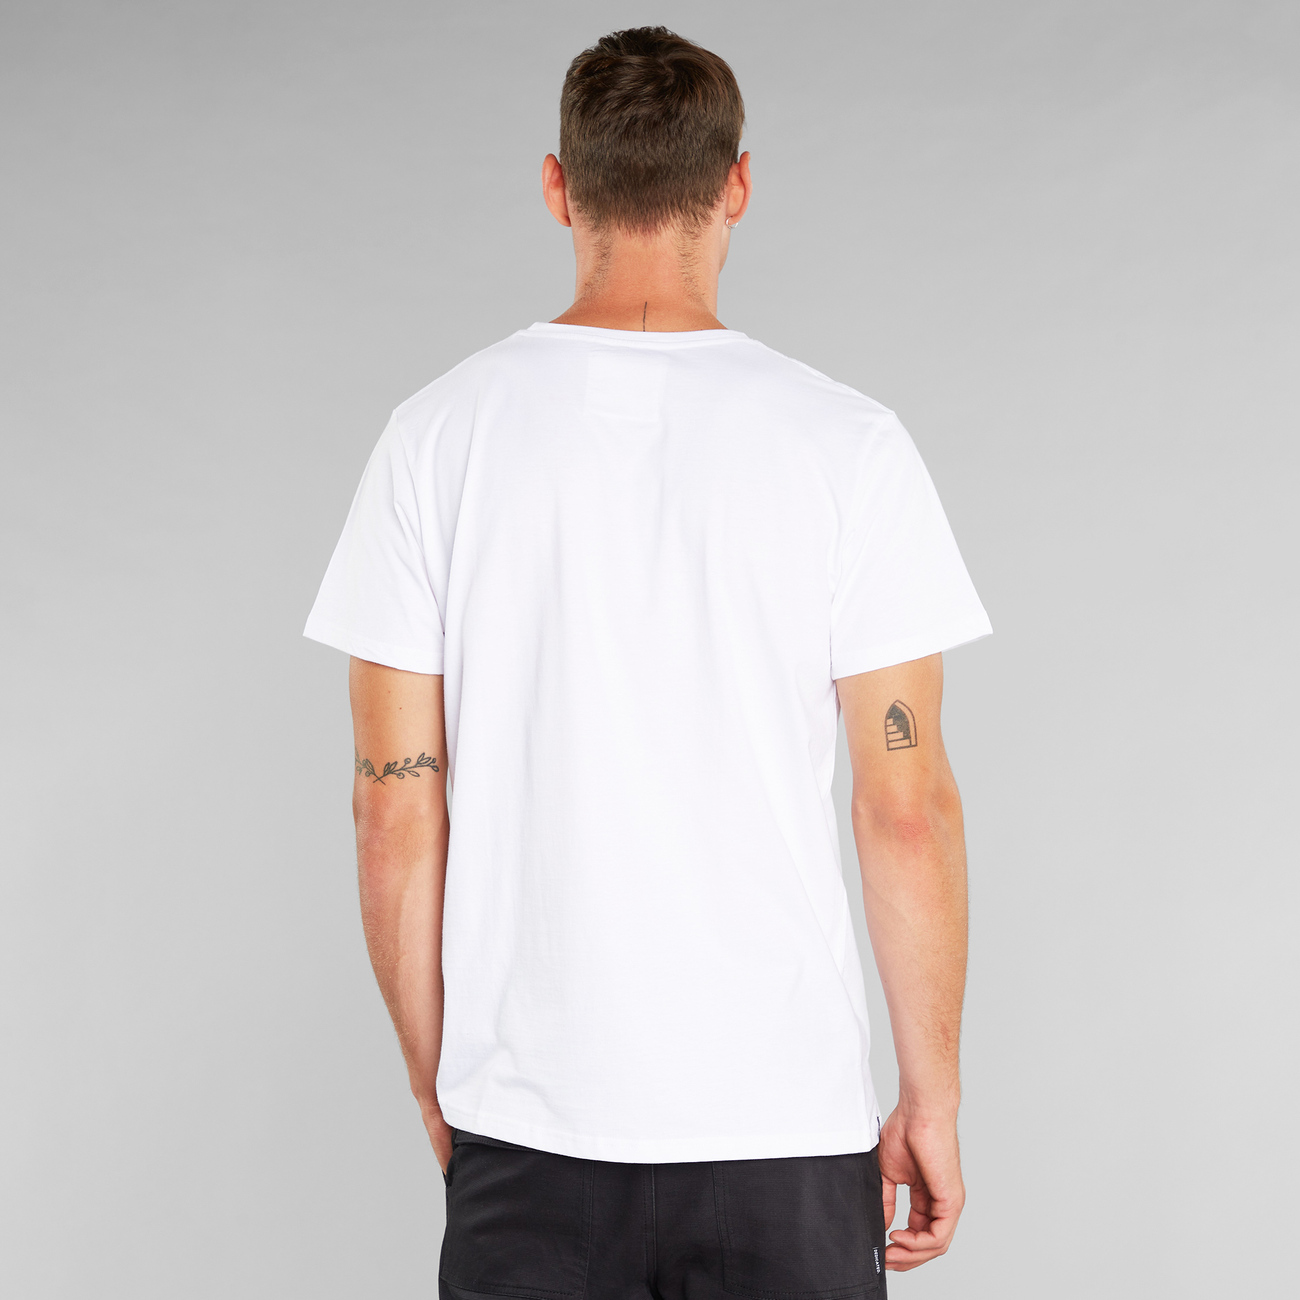 T-shirt Stockholm Snoopy Flags White